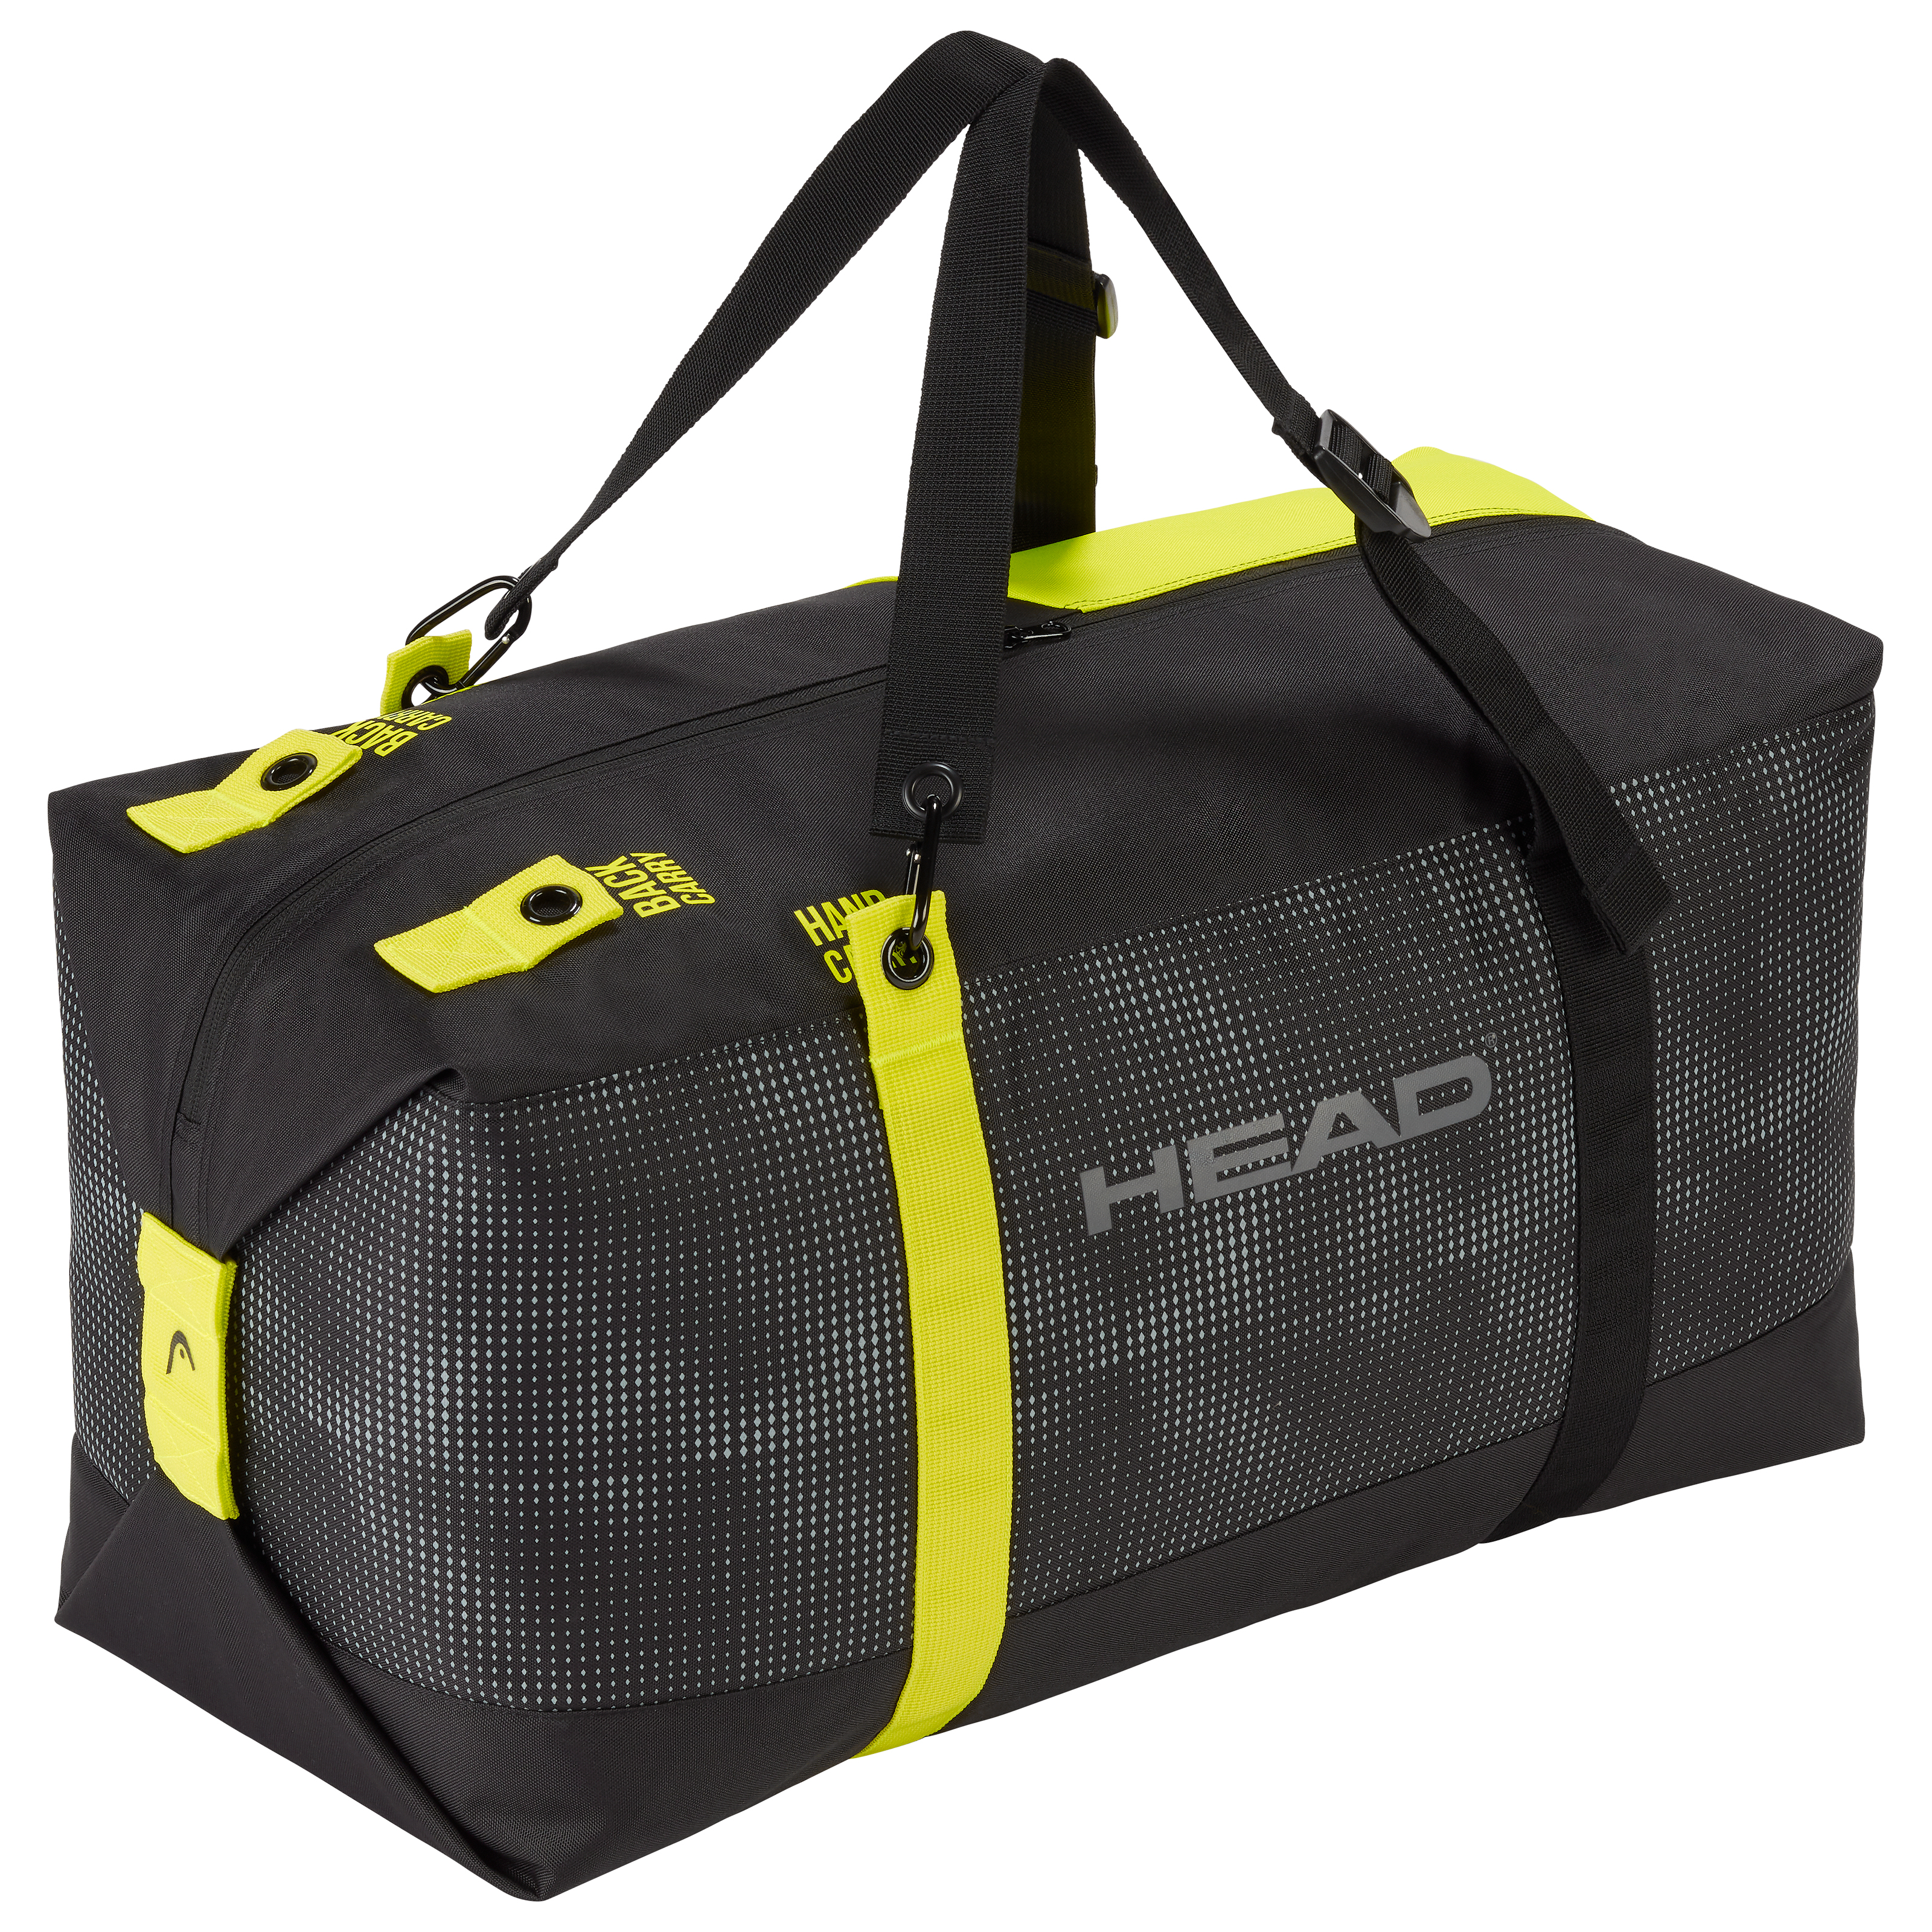 HEAD BORSONE Duffle Bag - 2020